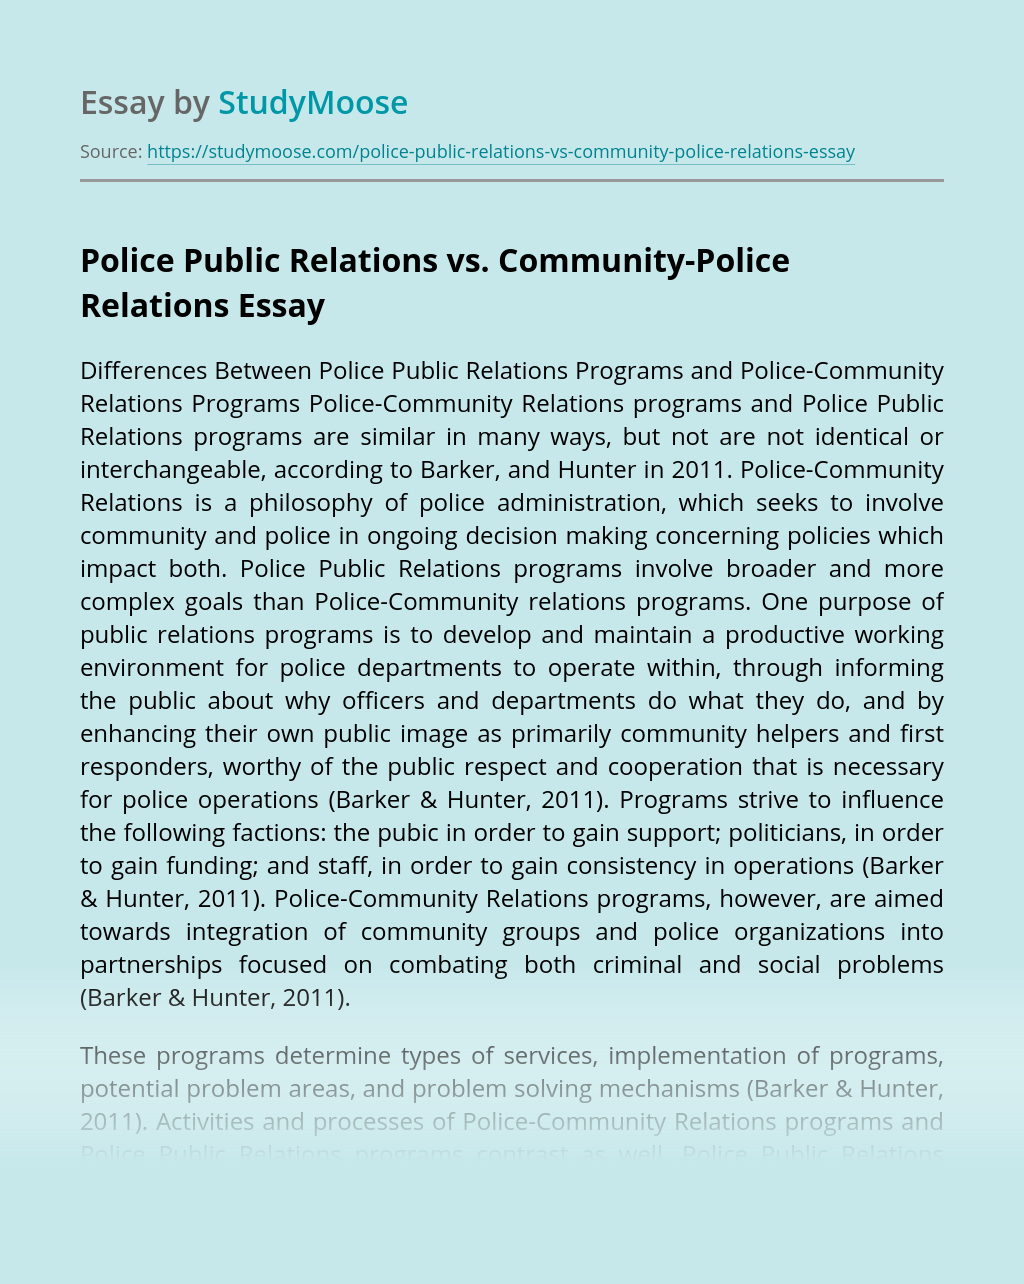 Police Public Relations vs. Community-Police Relations